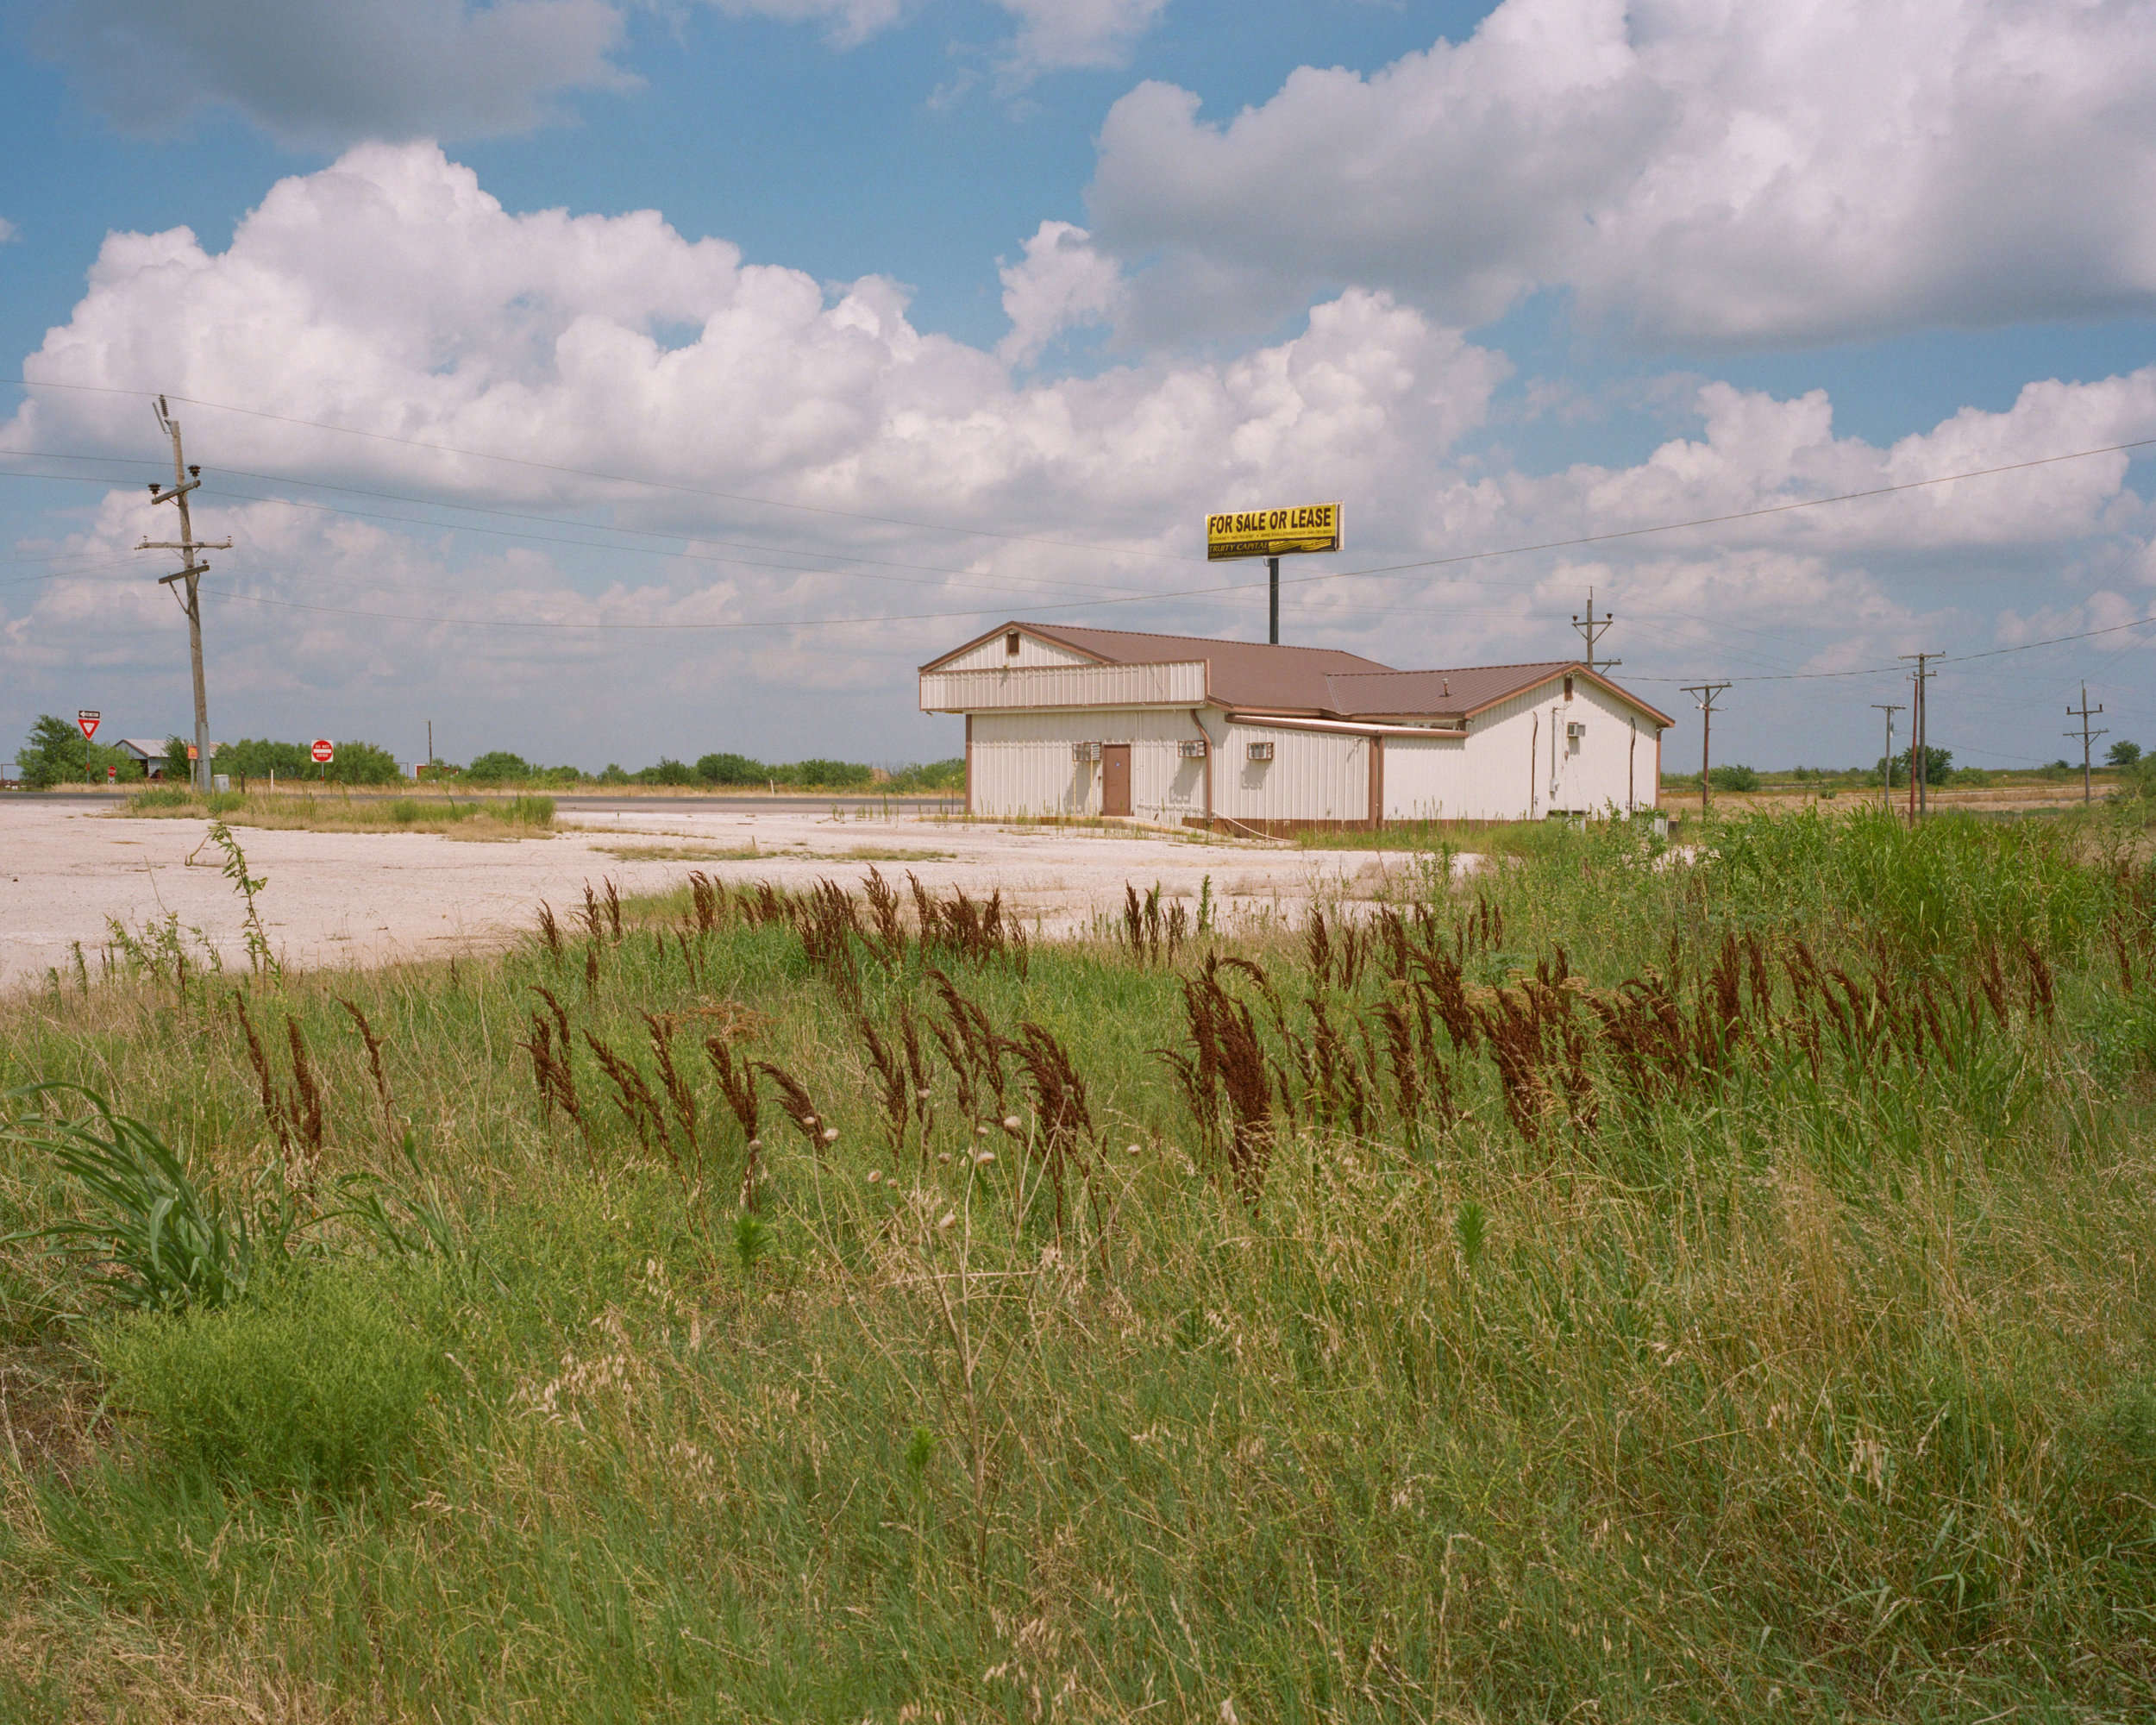 Adult Video no more, Highway 287, TX, 2019 - 120 Portra (6x7)